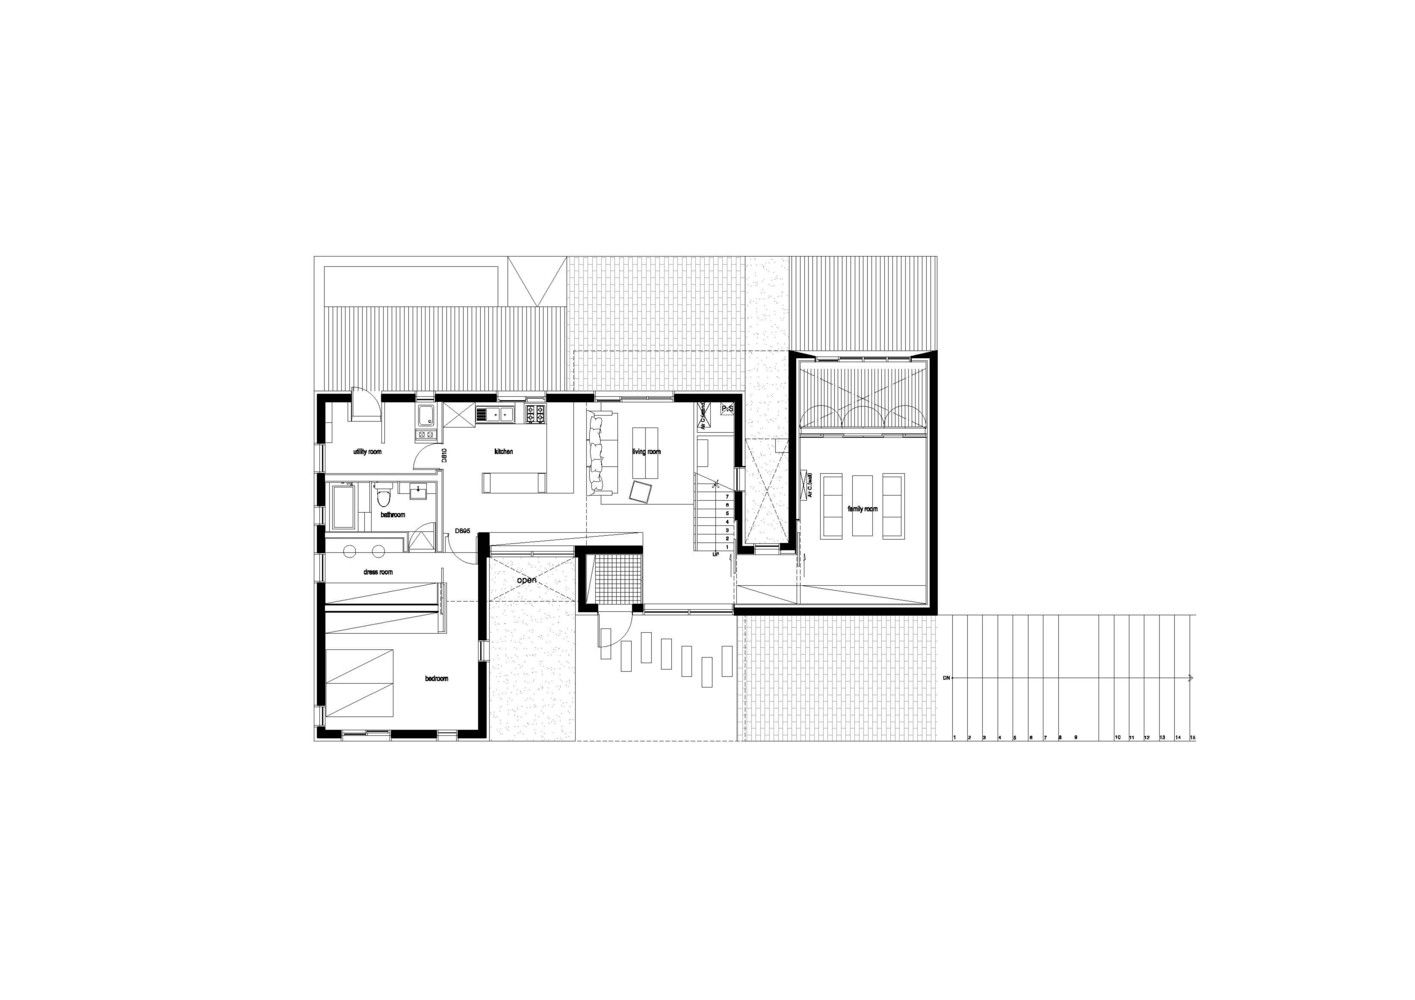 Gallery Of Living Knot Polymur 24 Architecture Ground Floor Plan Floor Plans